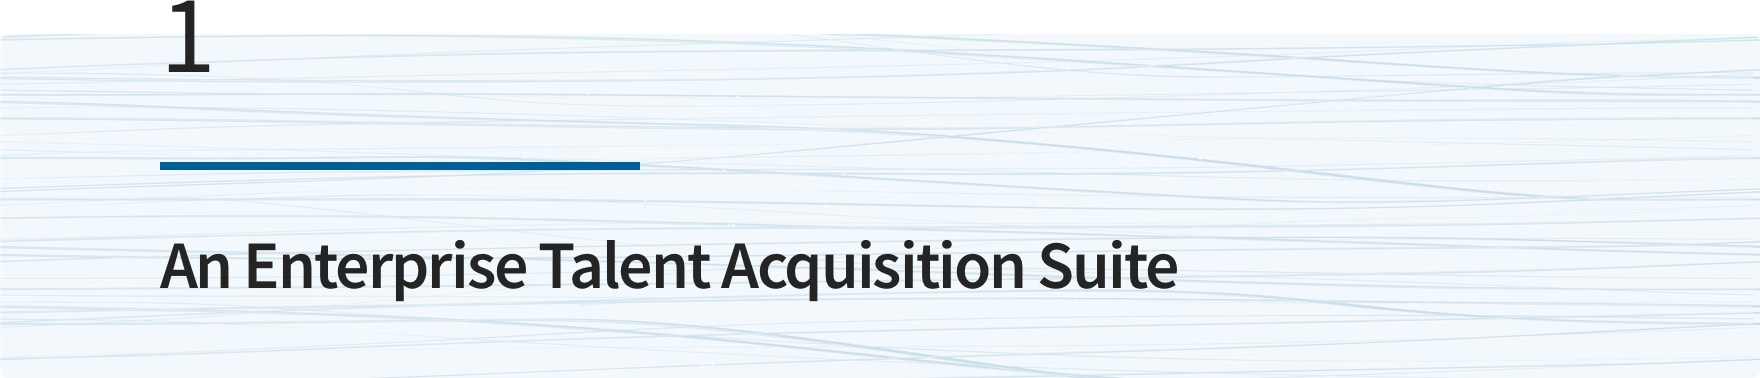 An Enterprise Talent Acquisition Suite